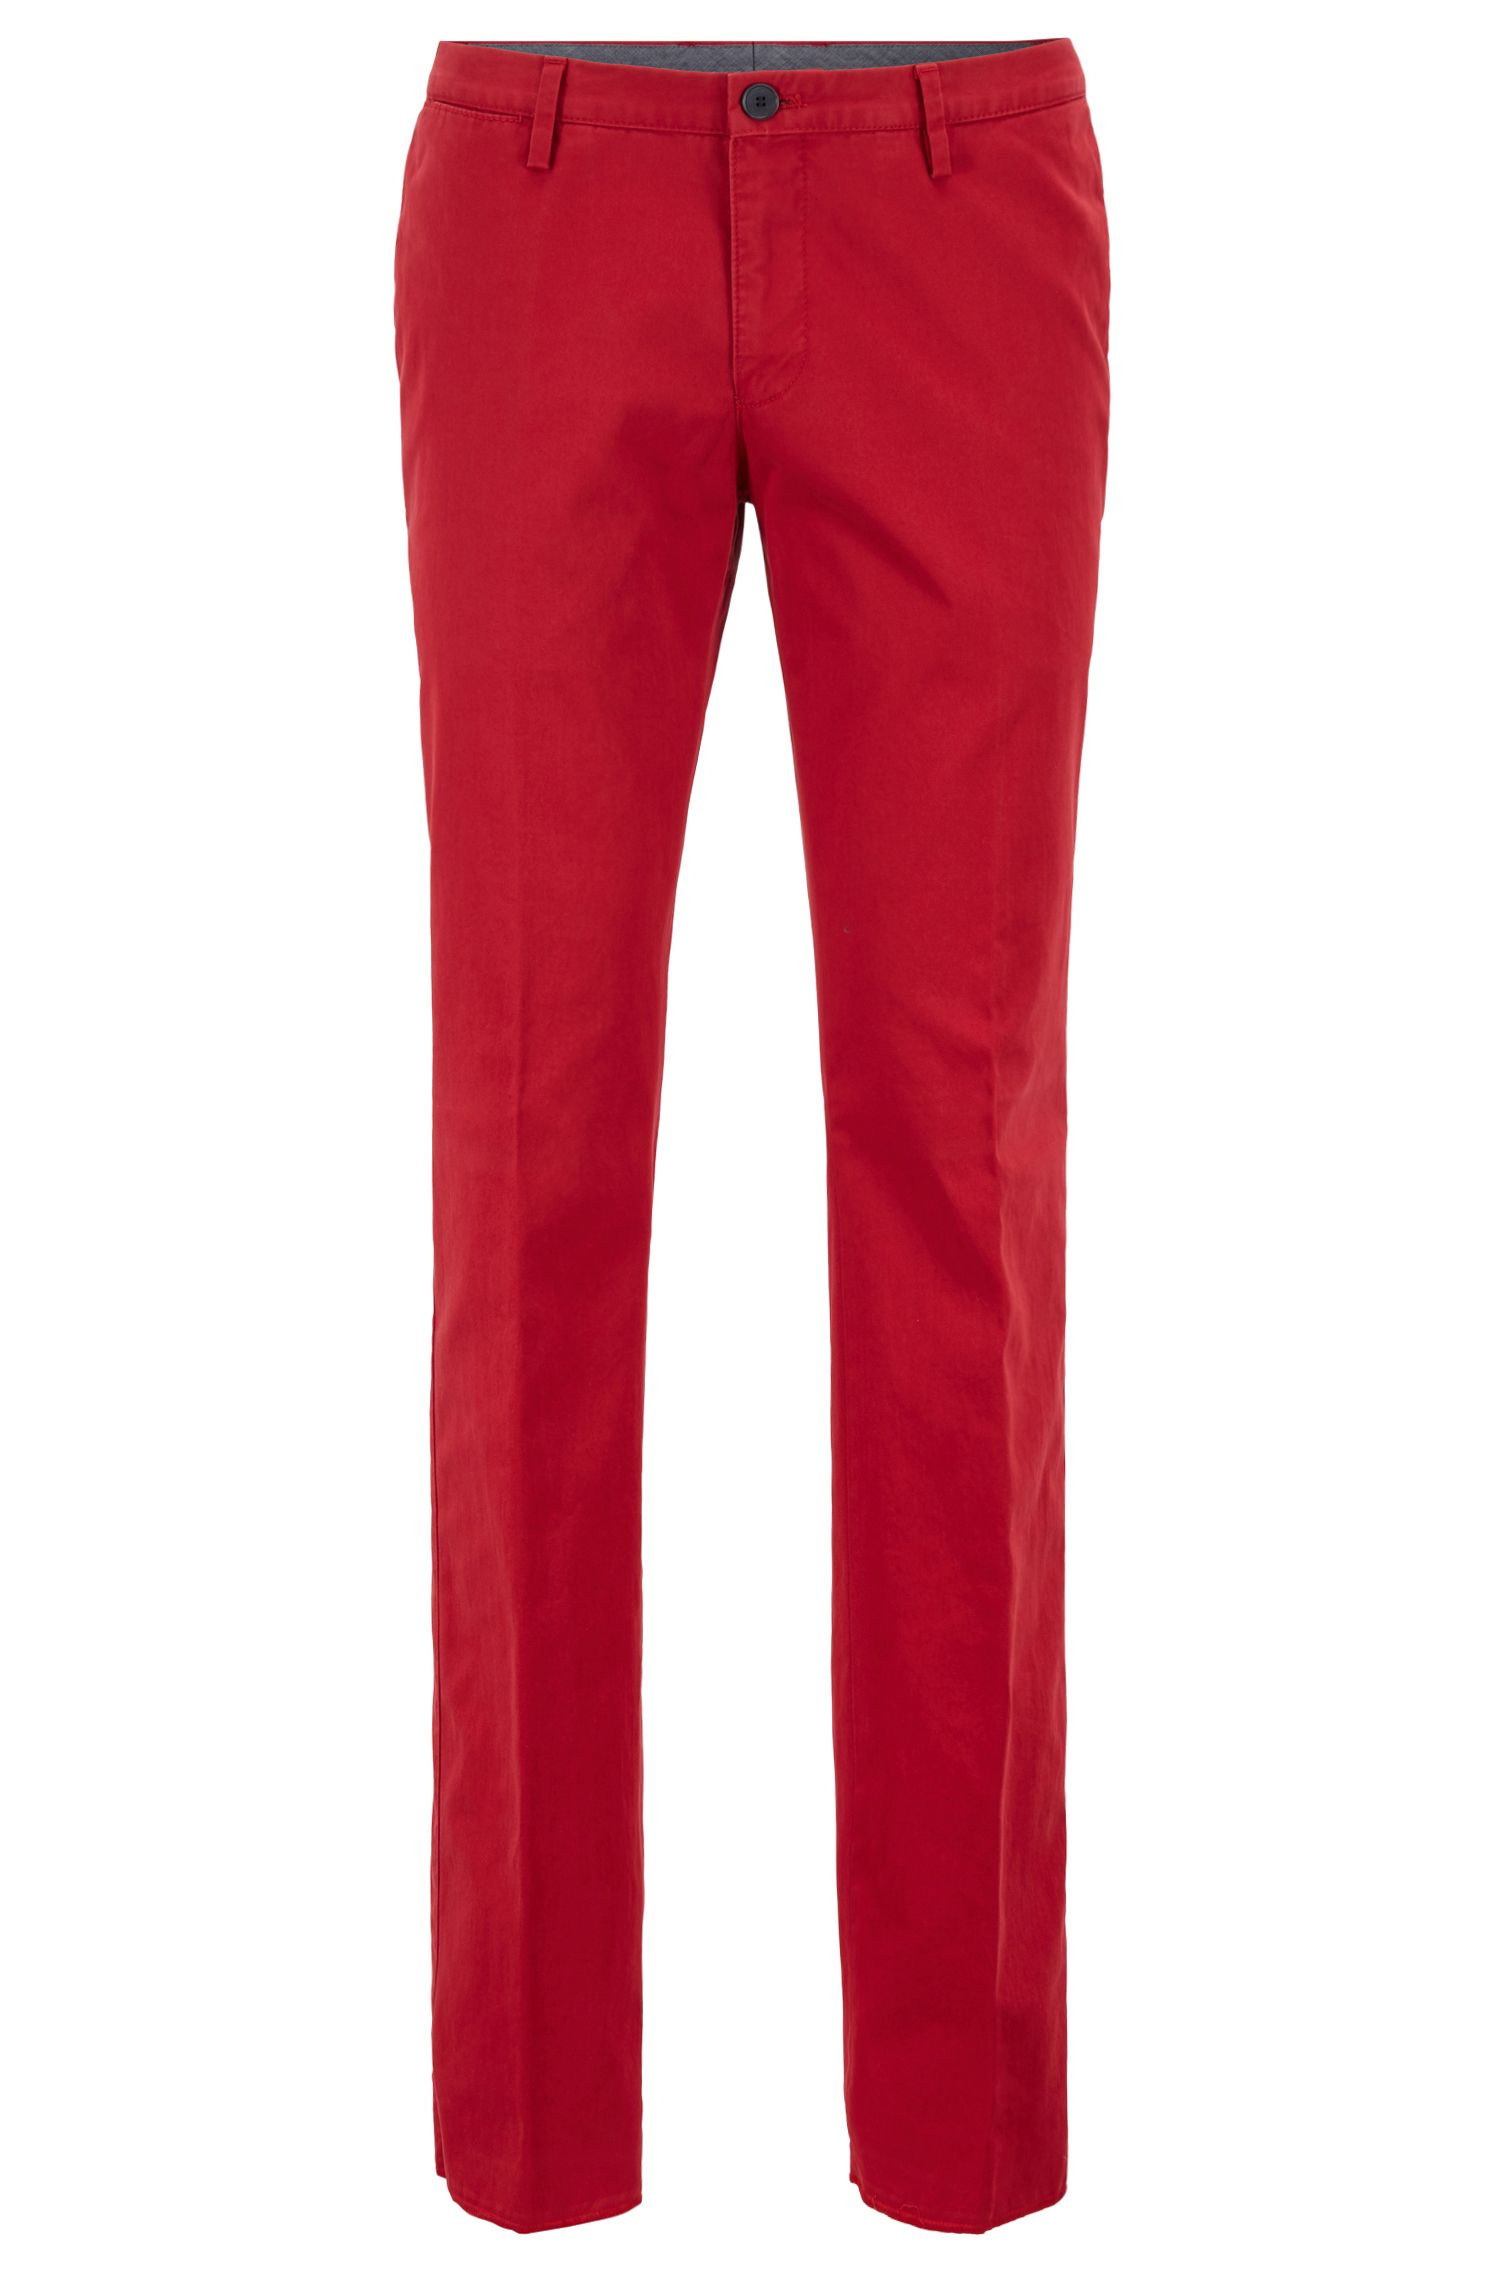 Slim-fit pants in garment-dyed stretch cotton, Red